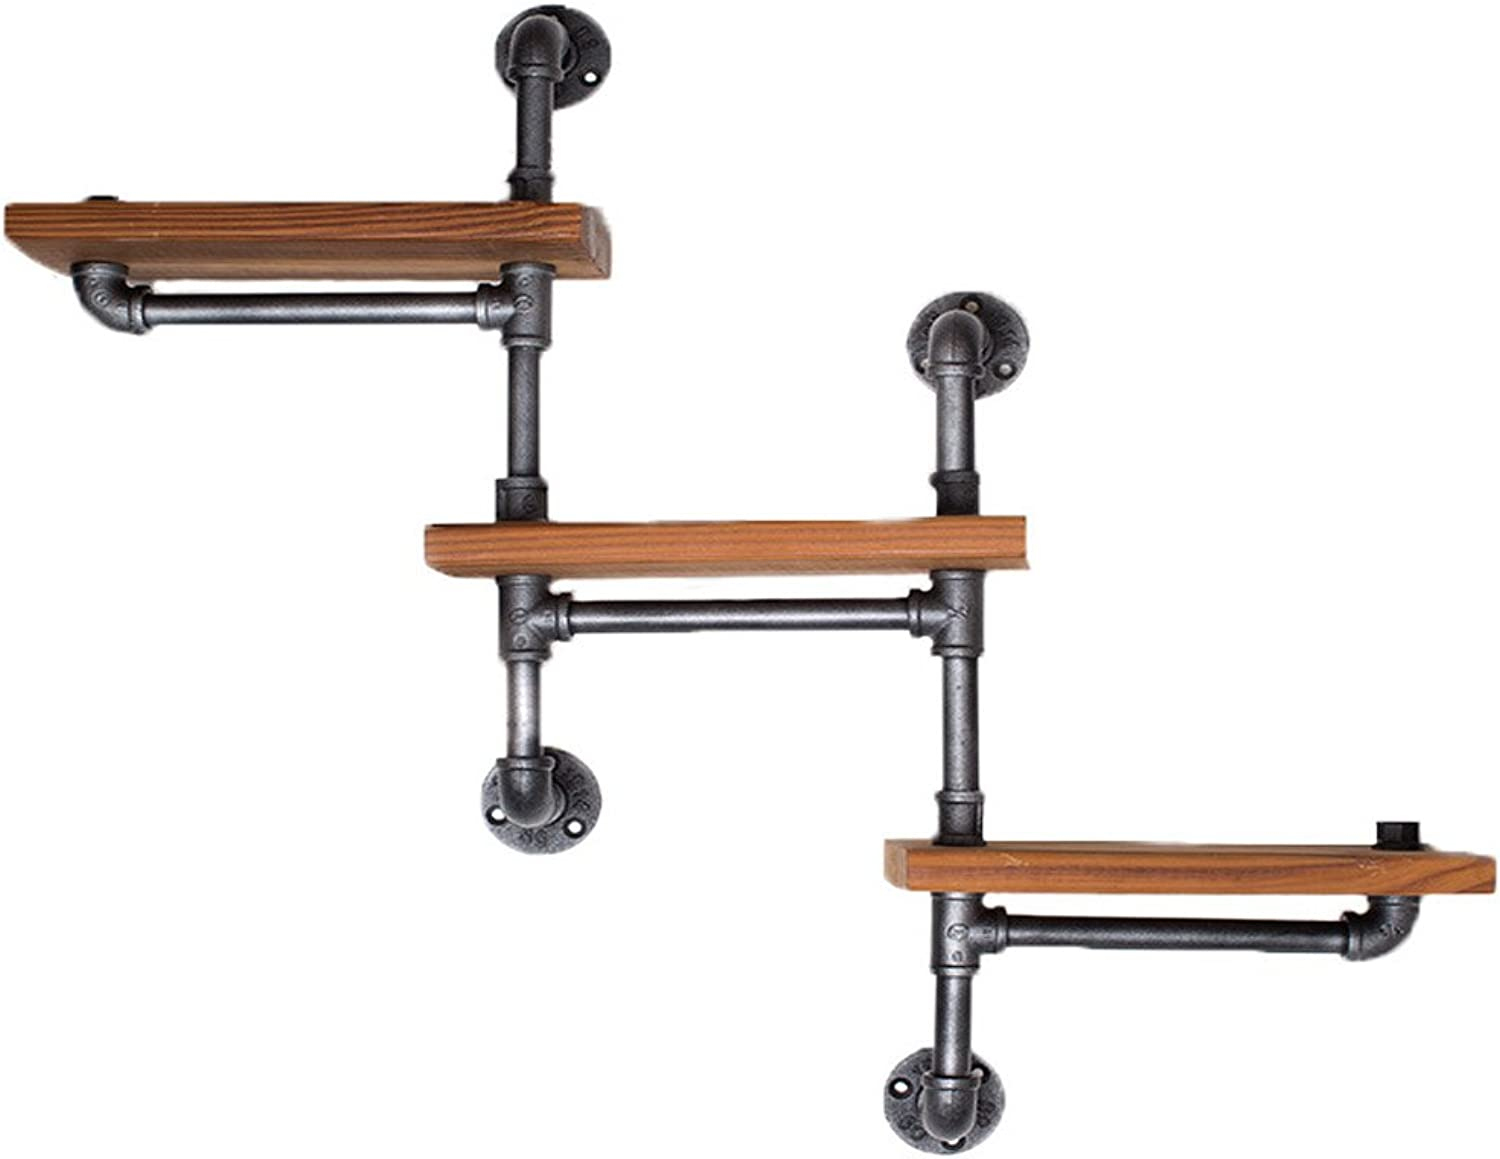 Find Joy Industrial Pipe Racks Wrought Iron Wall Pipe Retro Backdrop Wood Industry Water Separator Wall Shelves